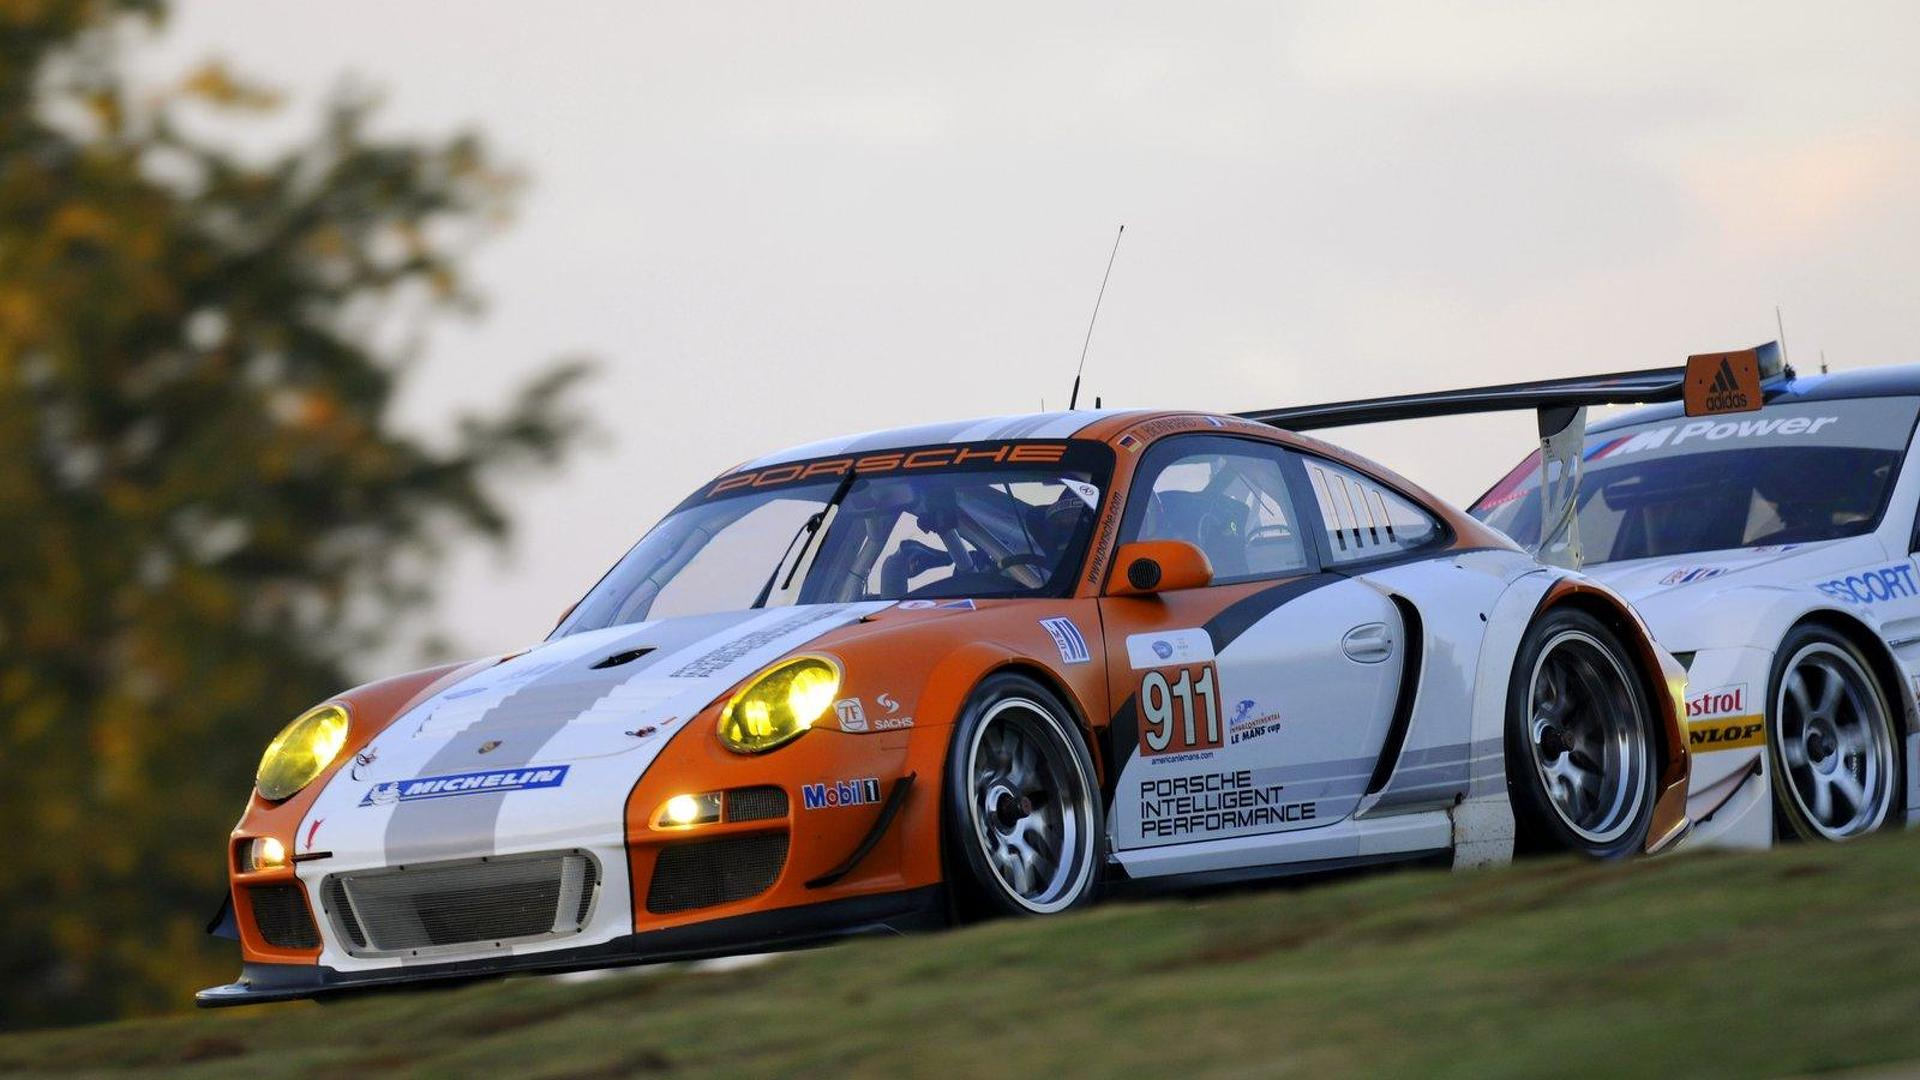 Porsche 911 Gt3 R Hybrid Makes North American Track Debut At The 2010 Pe Le Mans Video